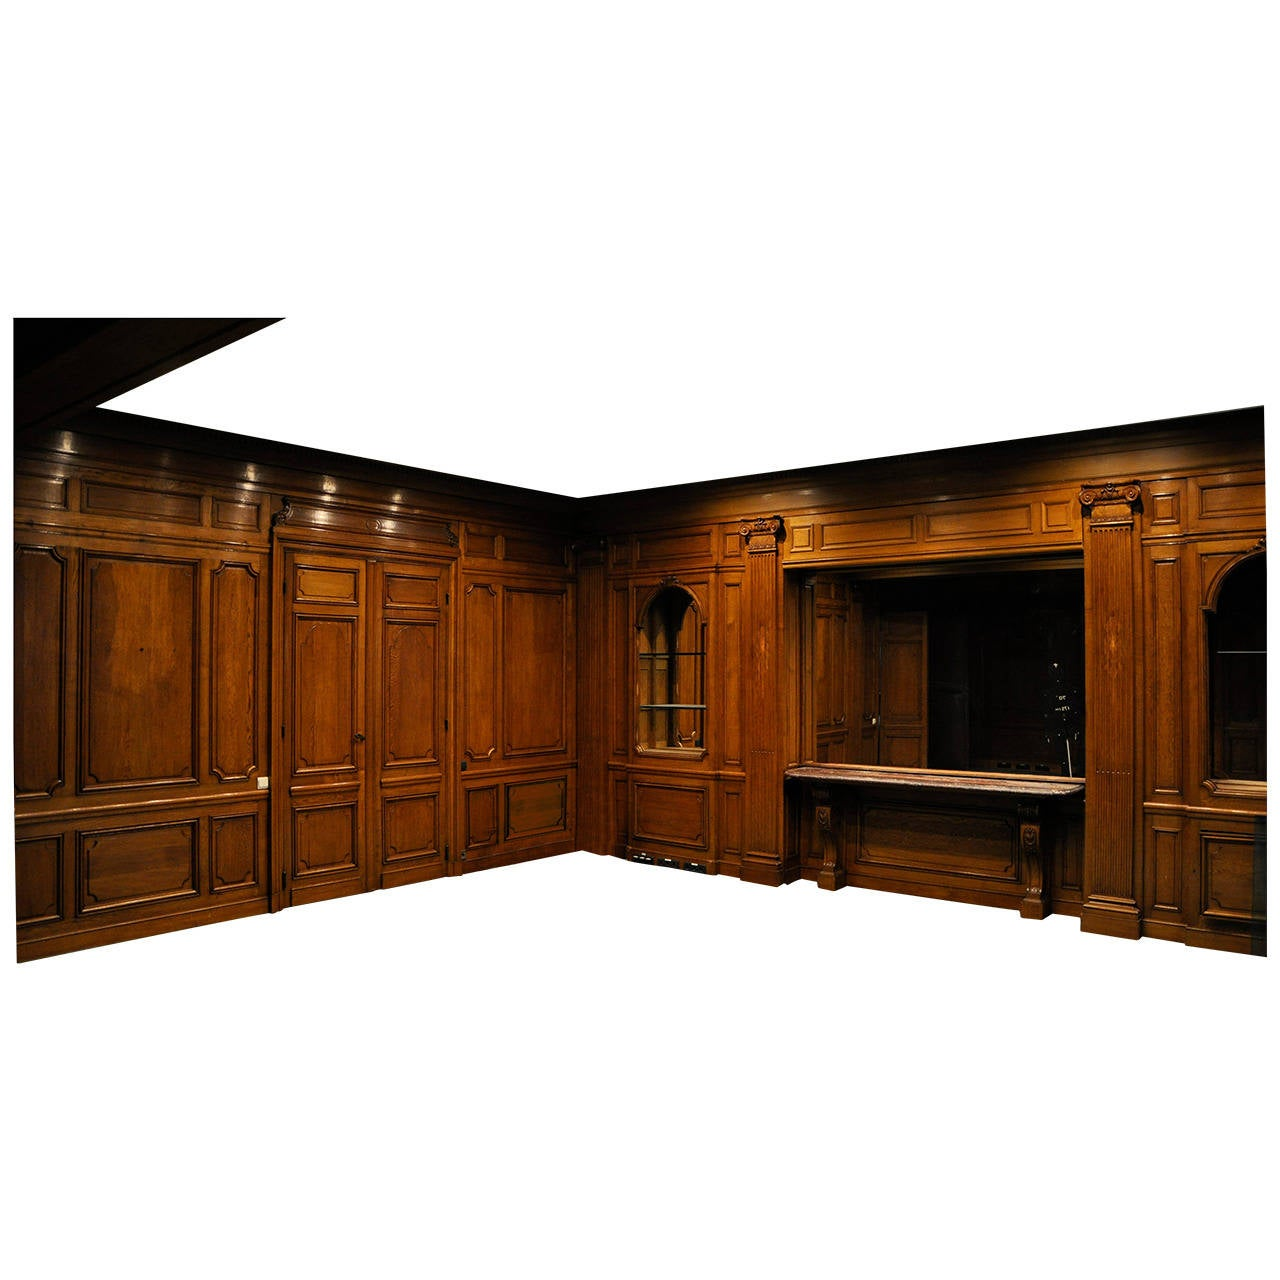 Oak Paneled Rooms : Sculpted oak wood paneled room th century for sale at